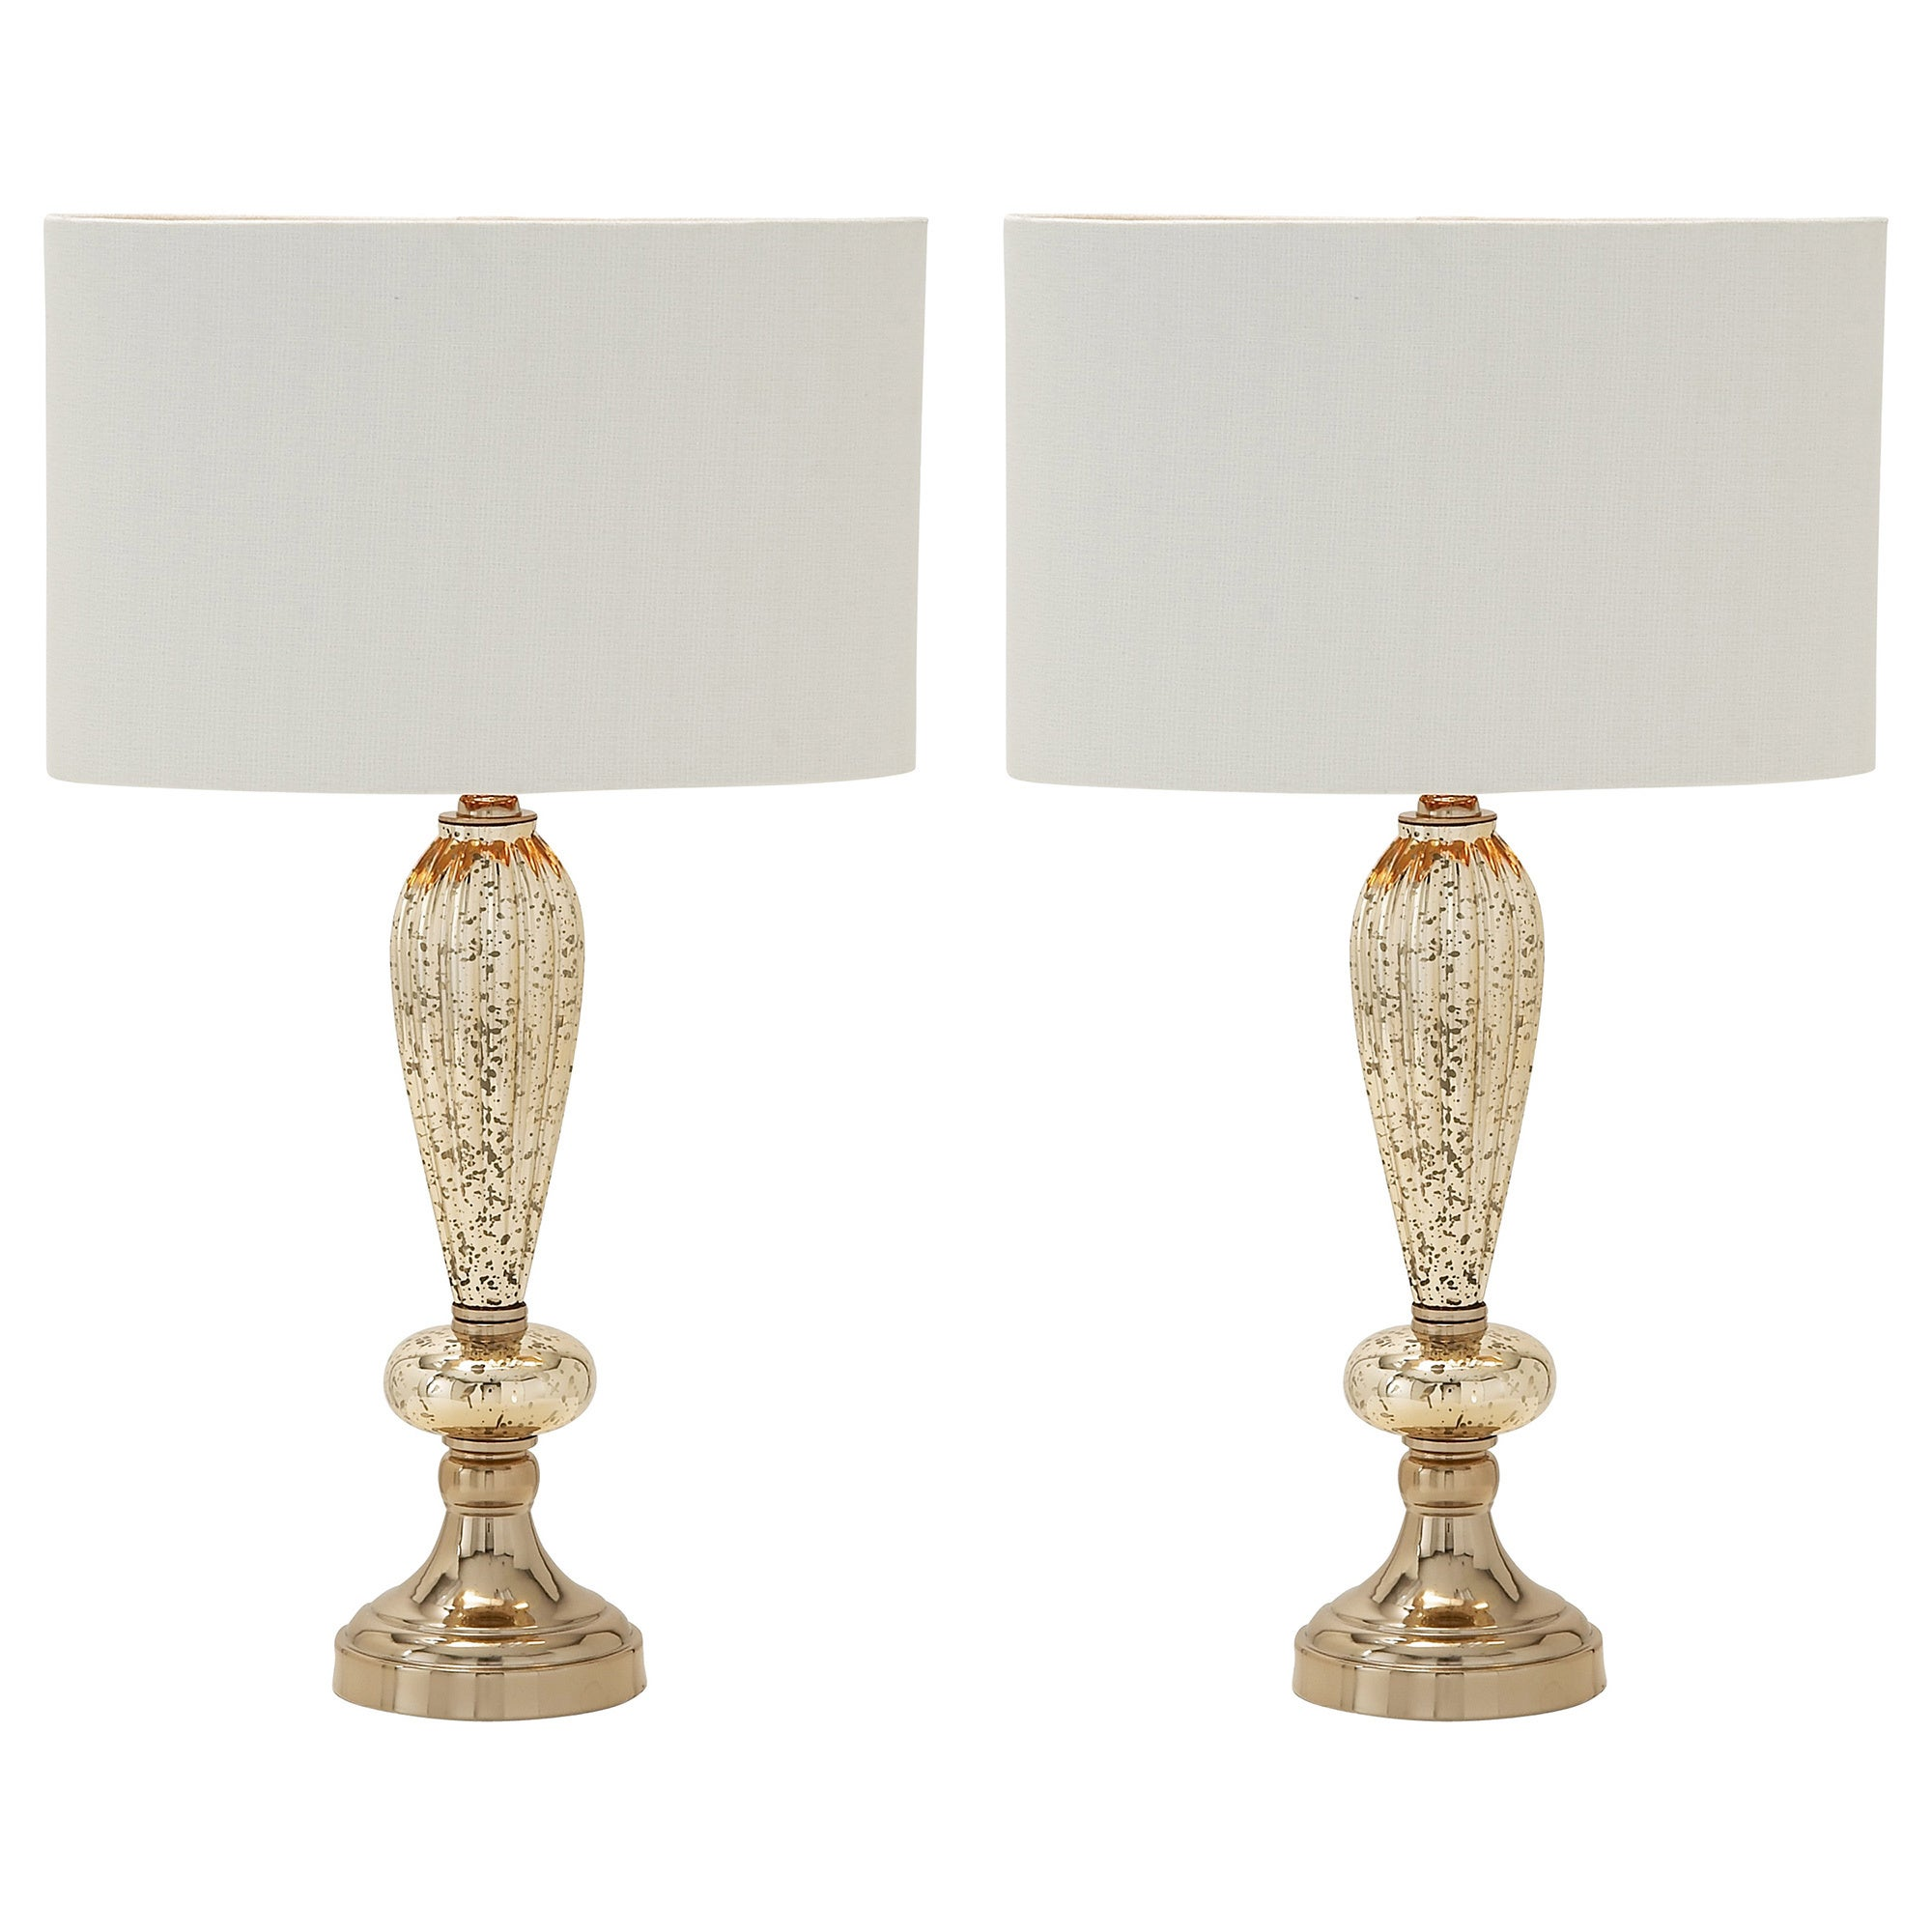 Exceptional Shop Carmel Collection Oval Glass Table Lamps (Set Of 2)   Free Shipping  Today   Overstock.com   10477582